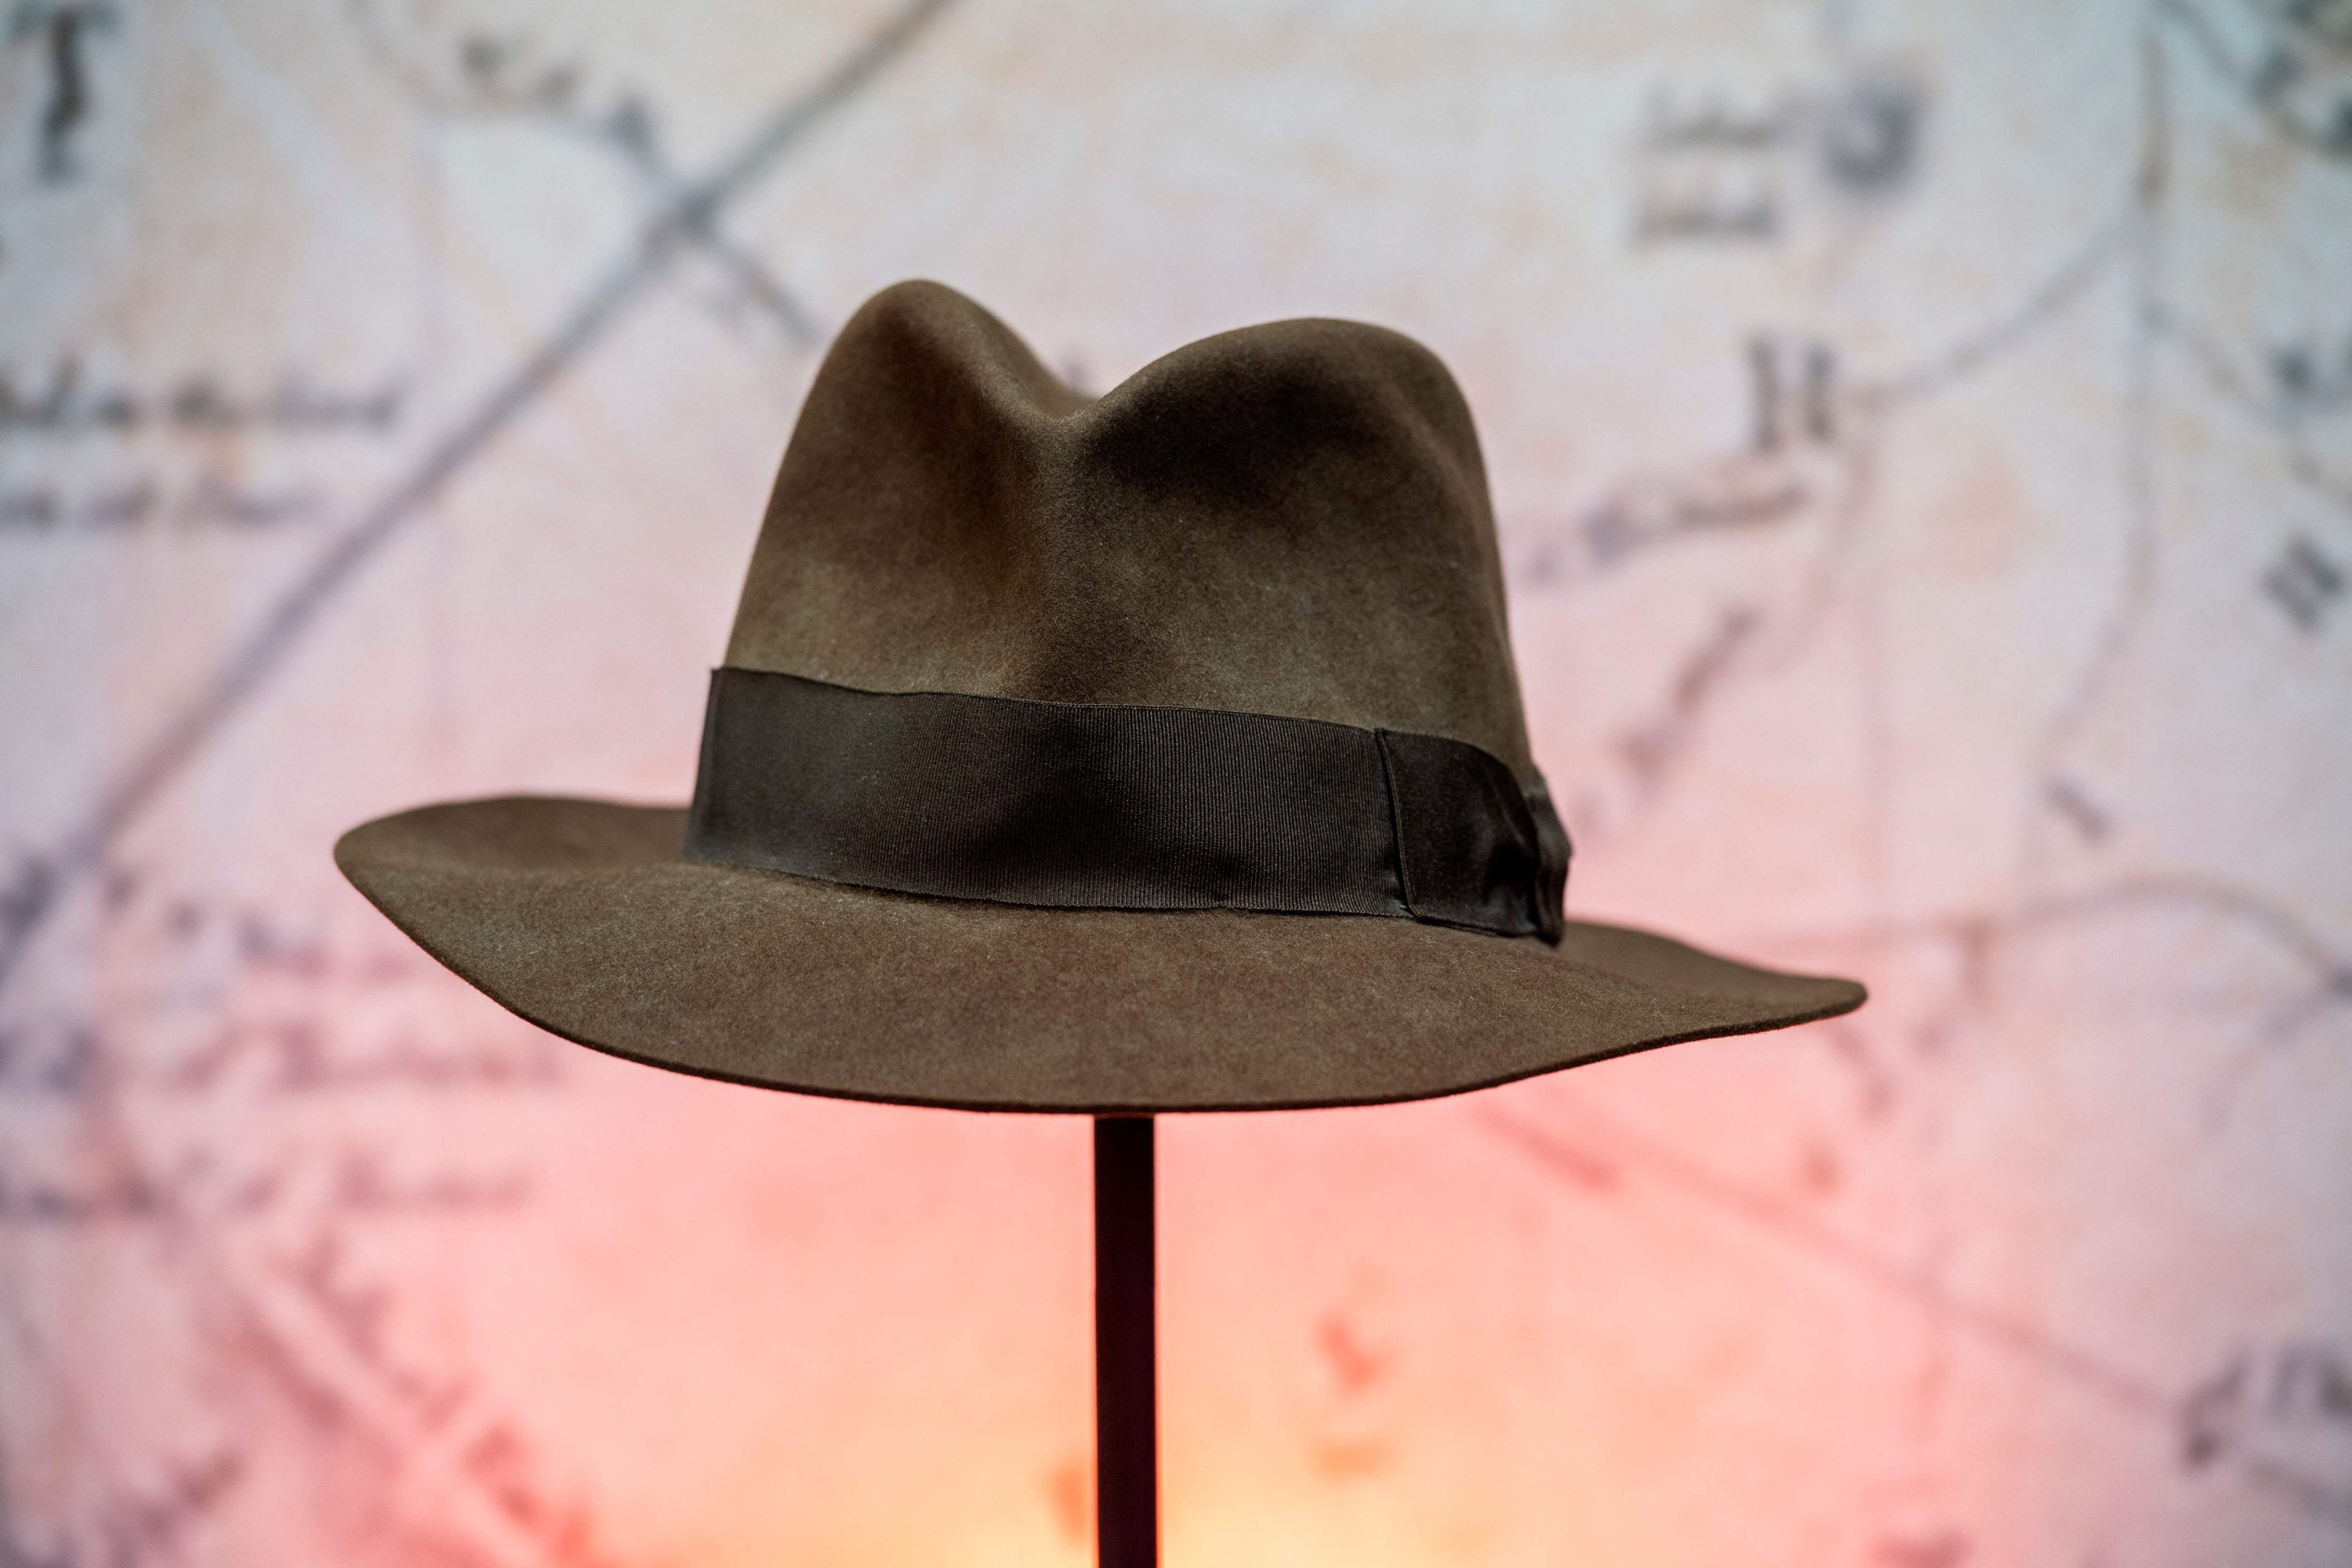 Harrison Ford's Indiana Jones' fedora hat from the movie 'Indiana Jones & the Temple of Doom' is exhibited during a press preview of Prop Store's Iconic Film & TV Memorabilia in Valencia, California, May 14, 2021. (AFP Photo)